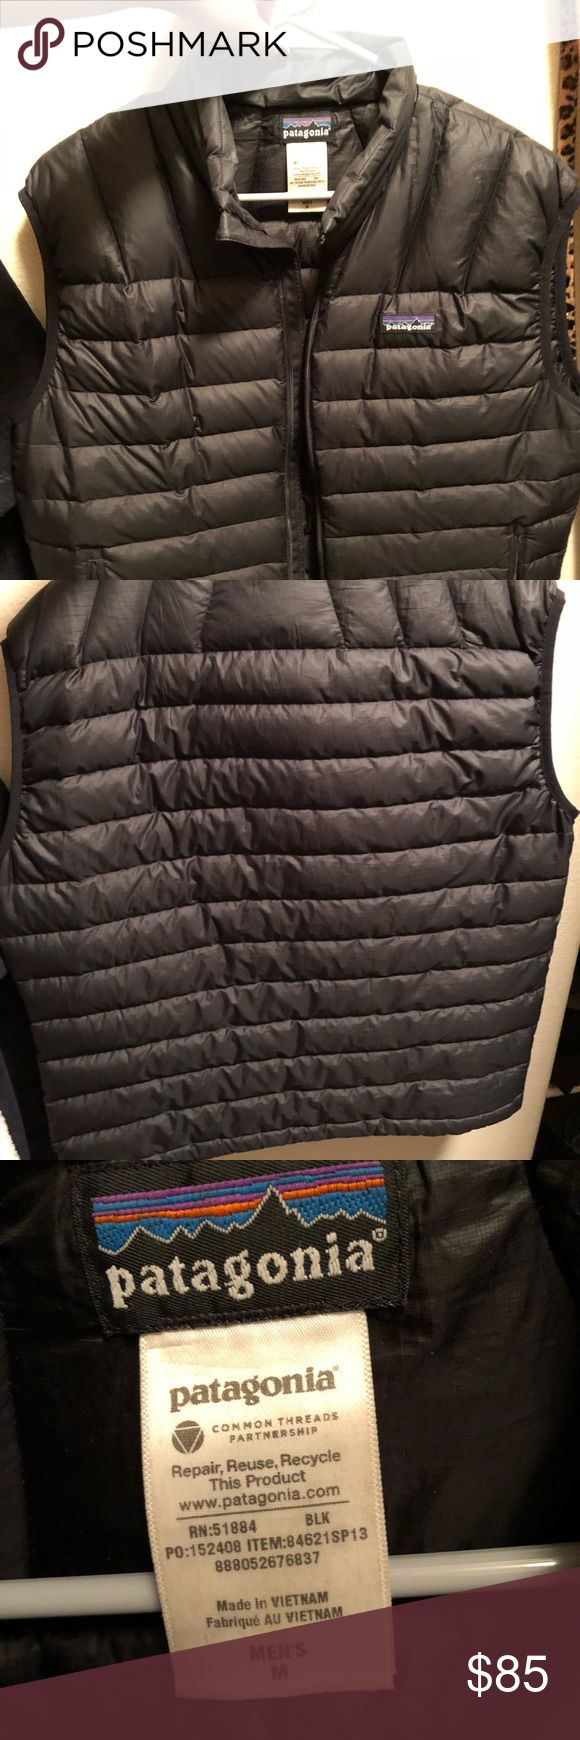 Black Patagonia Vest Black Patagonia vest! Men's M (but I wore frequently as a woman as an oversized vest) Patagonia Jackets & Coats Vests